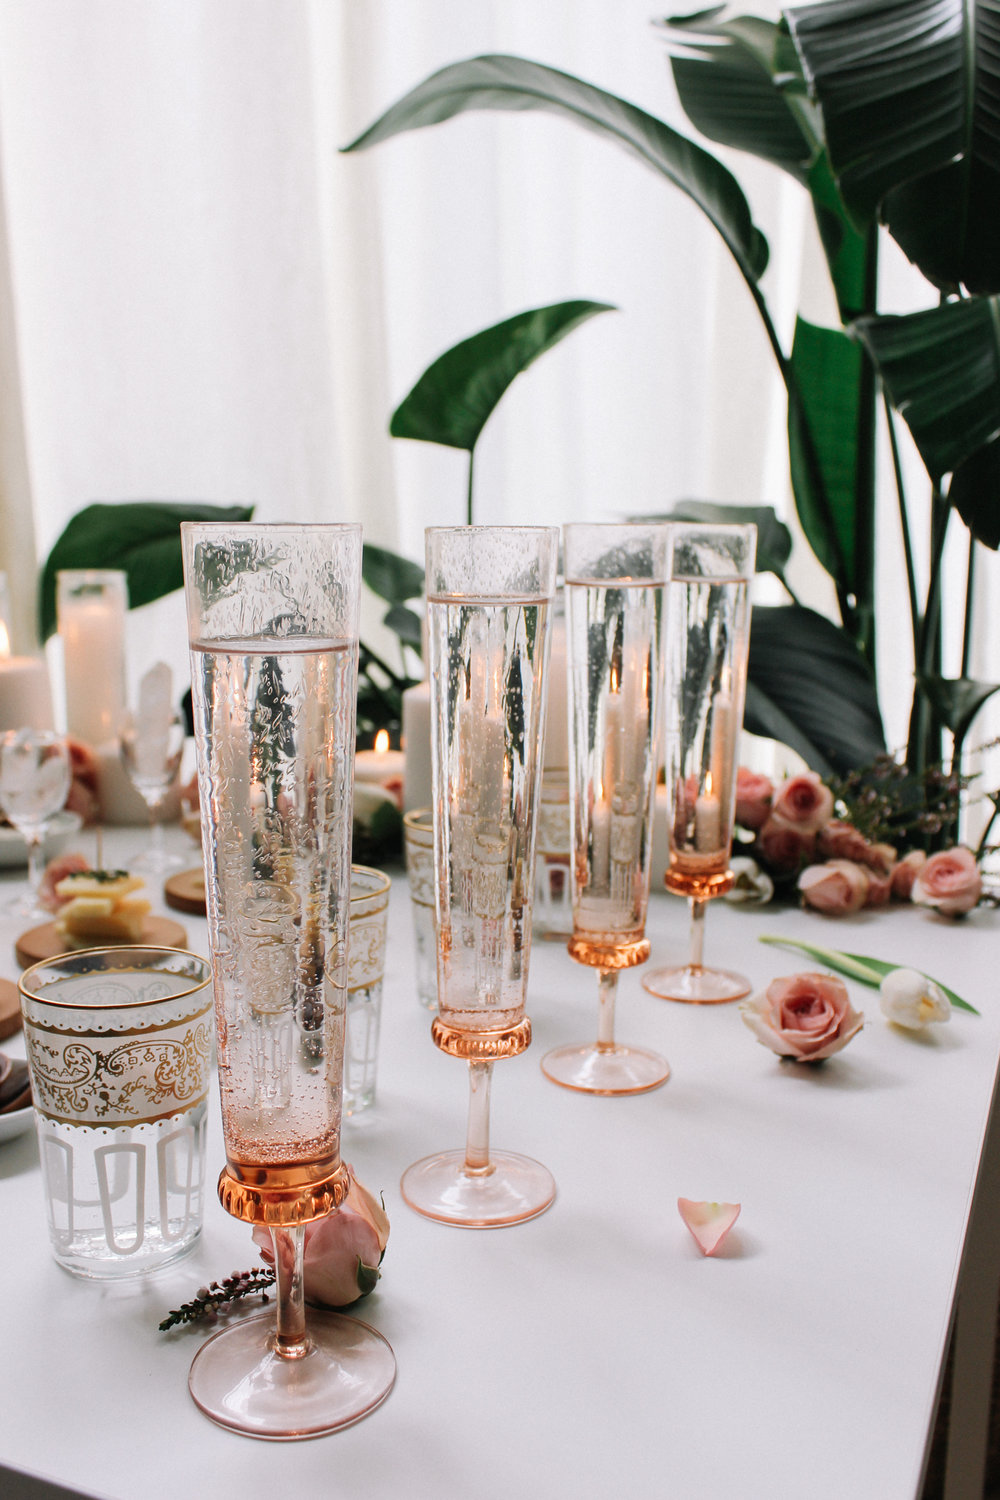 Break out your fanciest glassware for water too! | A Fabulous Fete